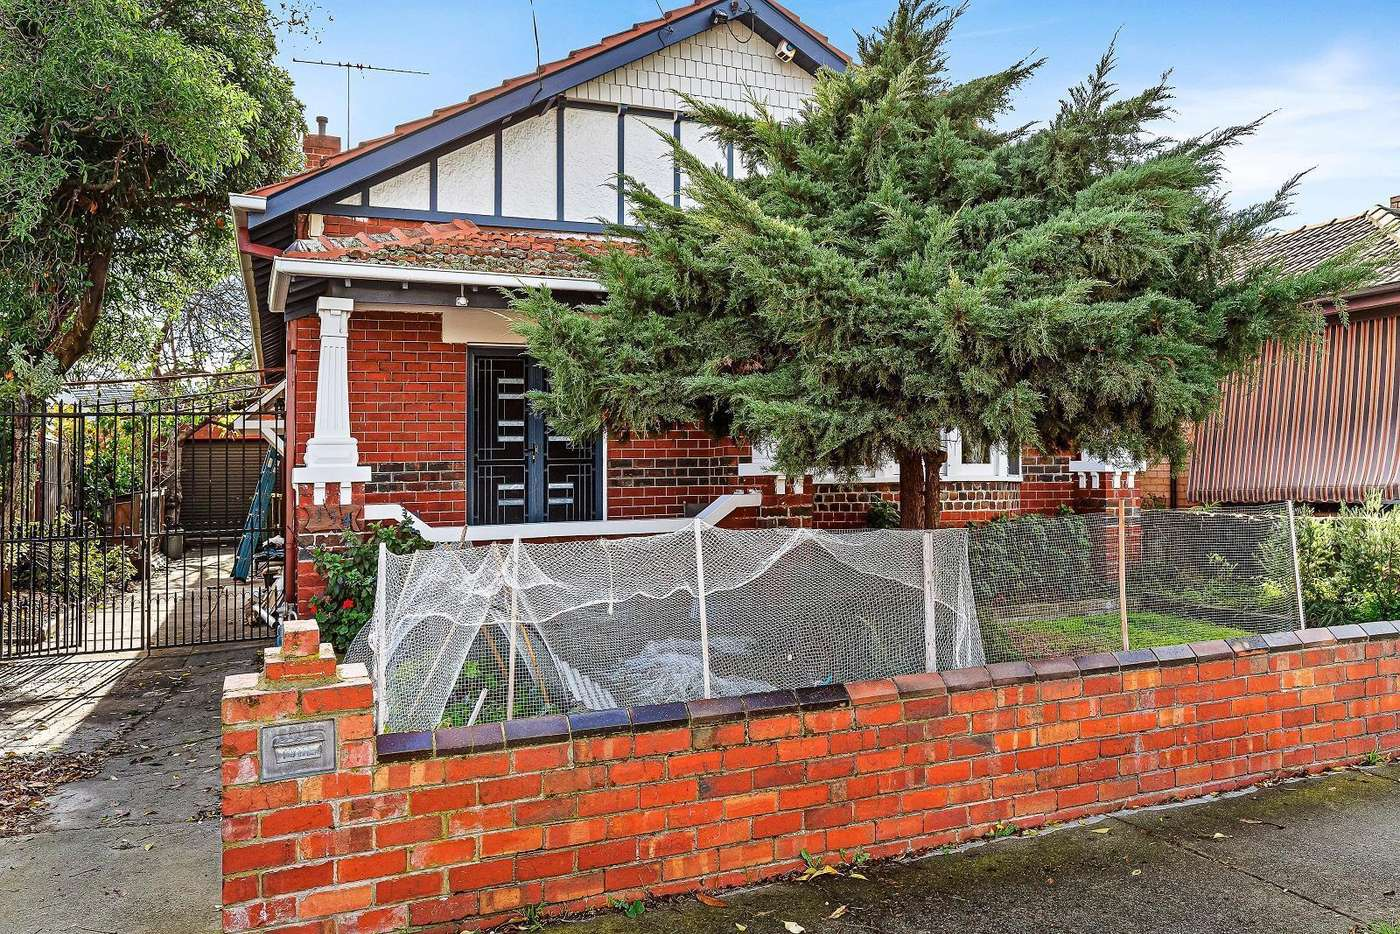 Main view of Homely house listing, 154 Bent Street, Northcote VIC 3070